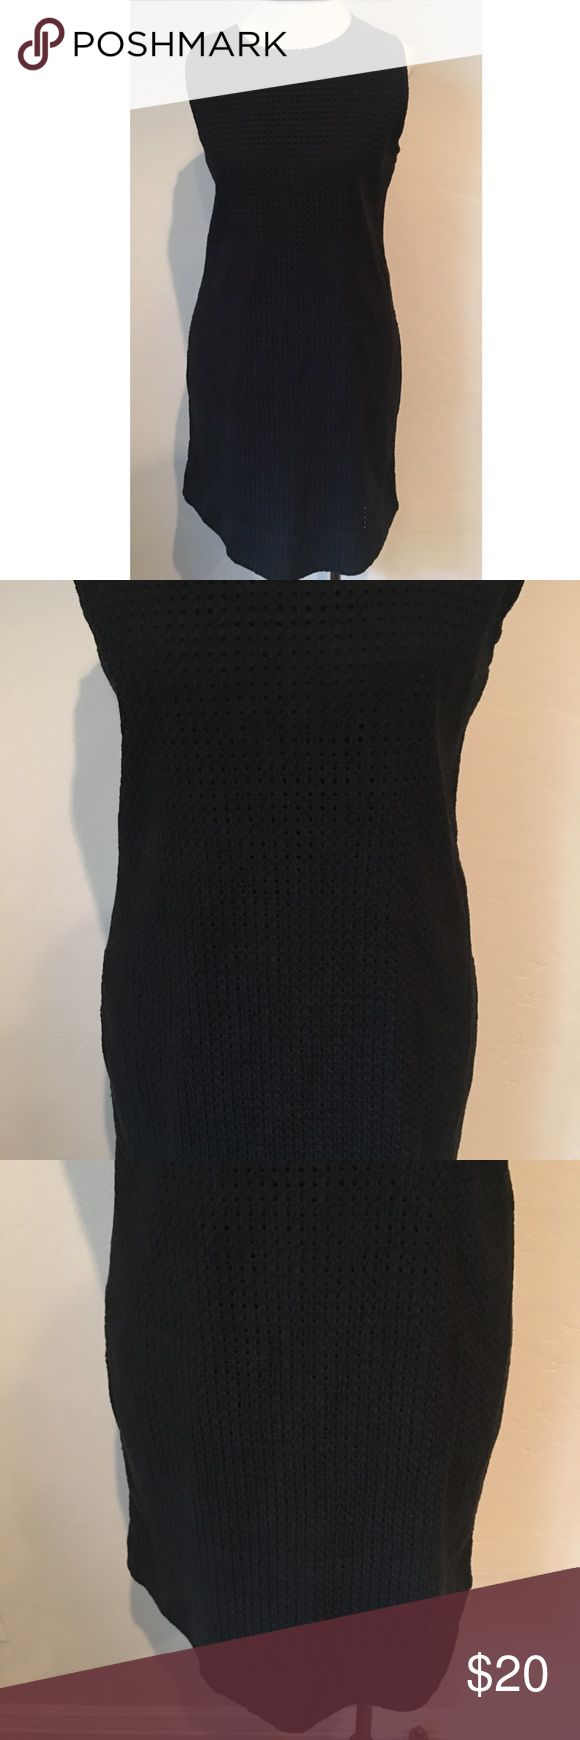 GAP Crochet Black Shift Dress Size Medium In great condition - only worn a few times! Please let me know if you have any questions.   Measurements:  Underarm to underarm: 19inches  Length: 34 inches GAP Dresses